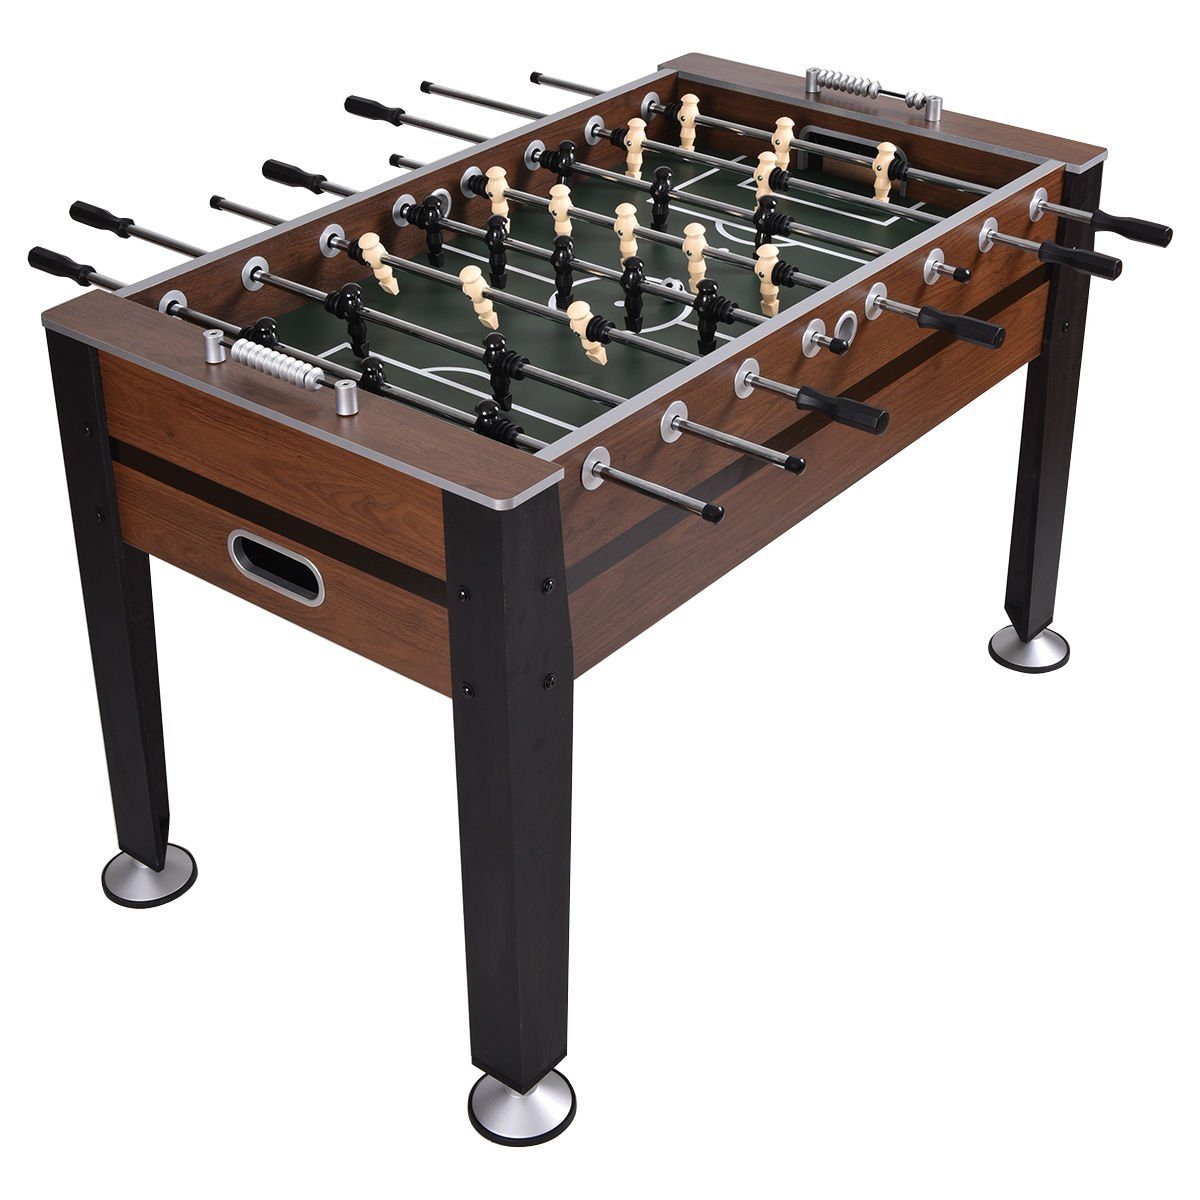 Goplus Foosball Table Soccer Game Table Competition Sized Football Arcade for Indoor Game Room Sport Superbuy